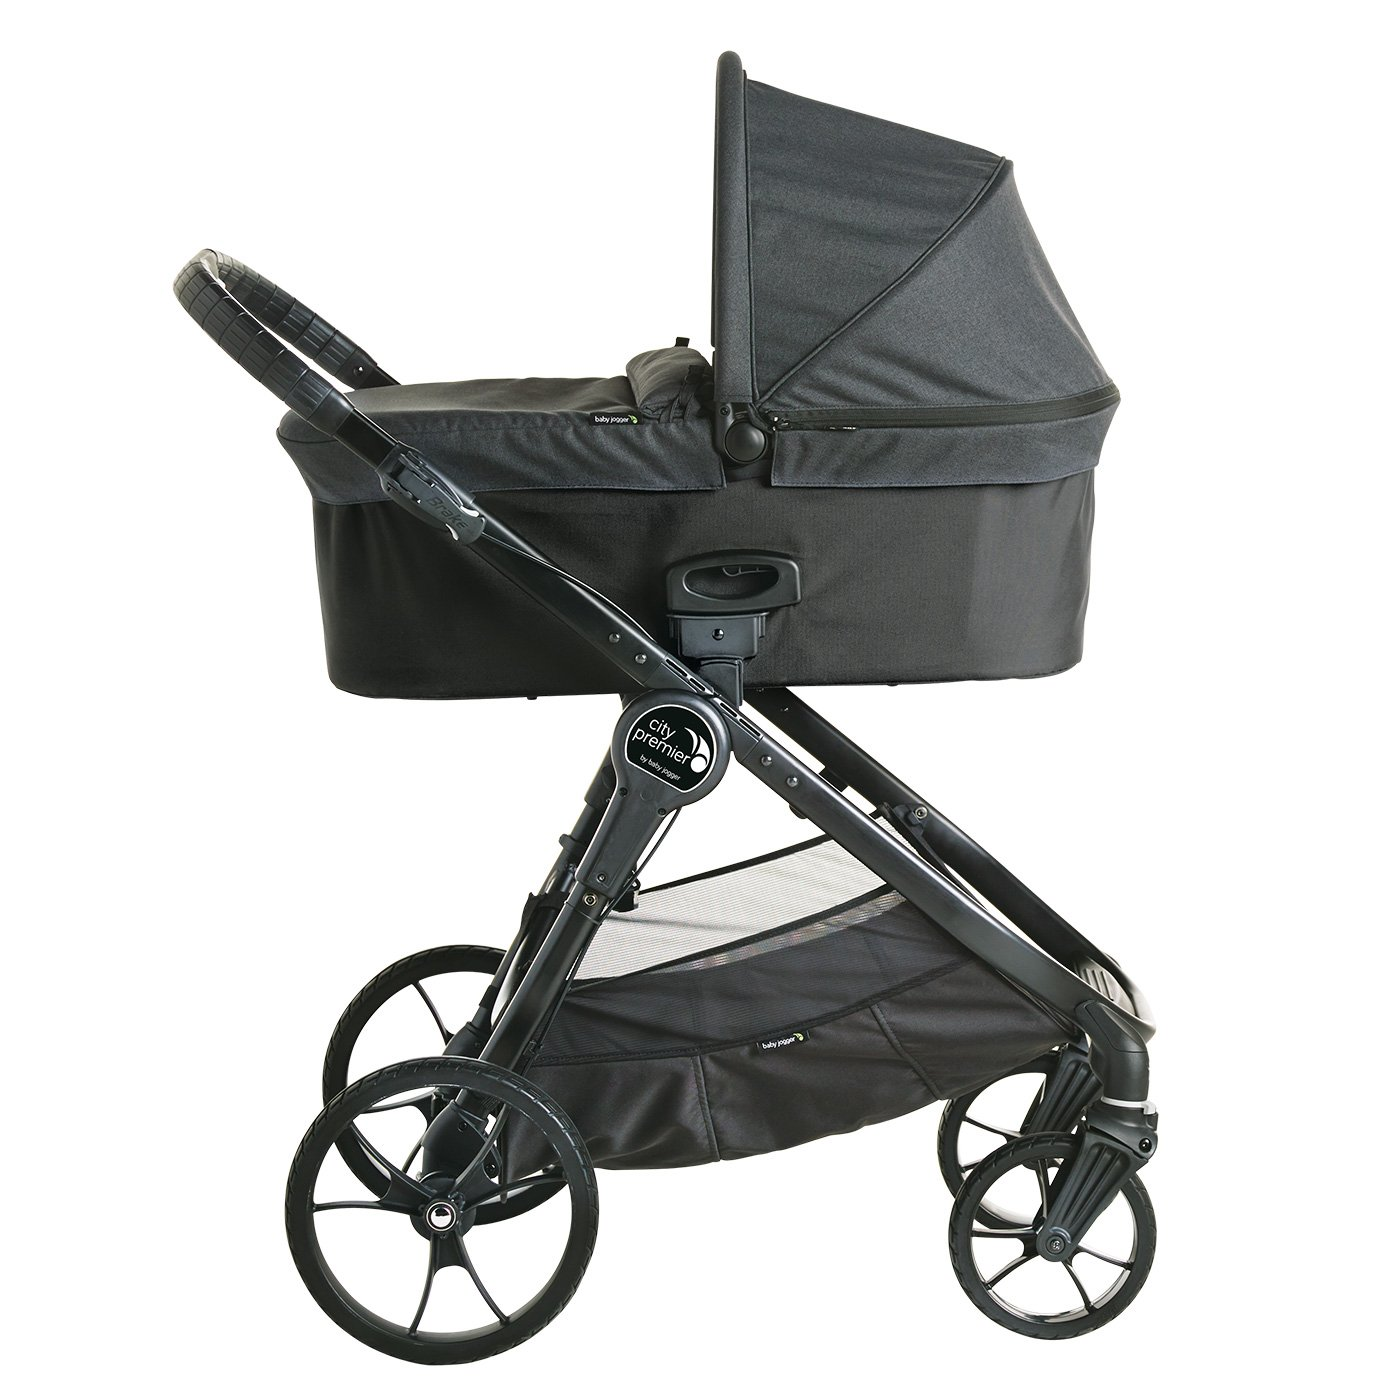 Baby Jogger City Premier Deluxe Bassinet For Stroller Baby Pram Compatible With Most Baby Jogger